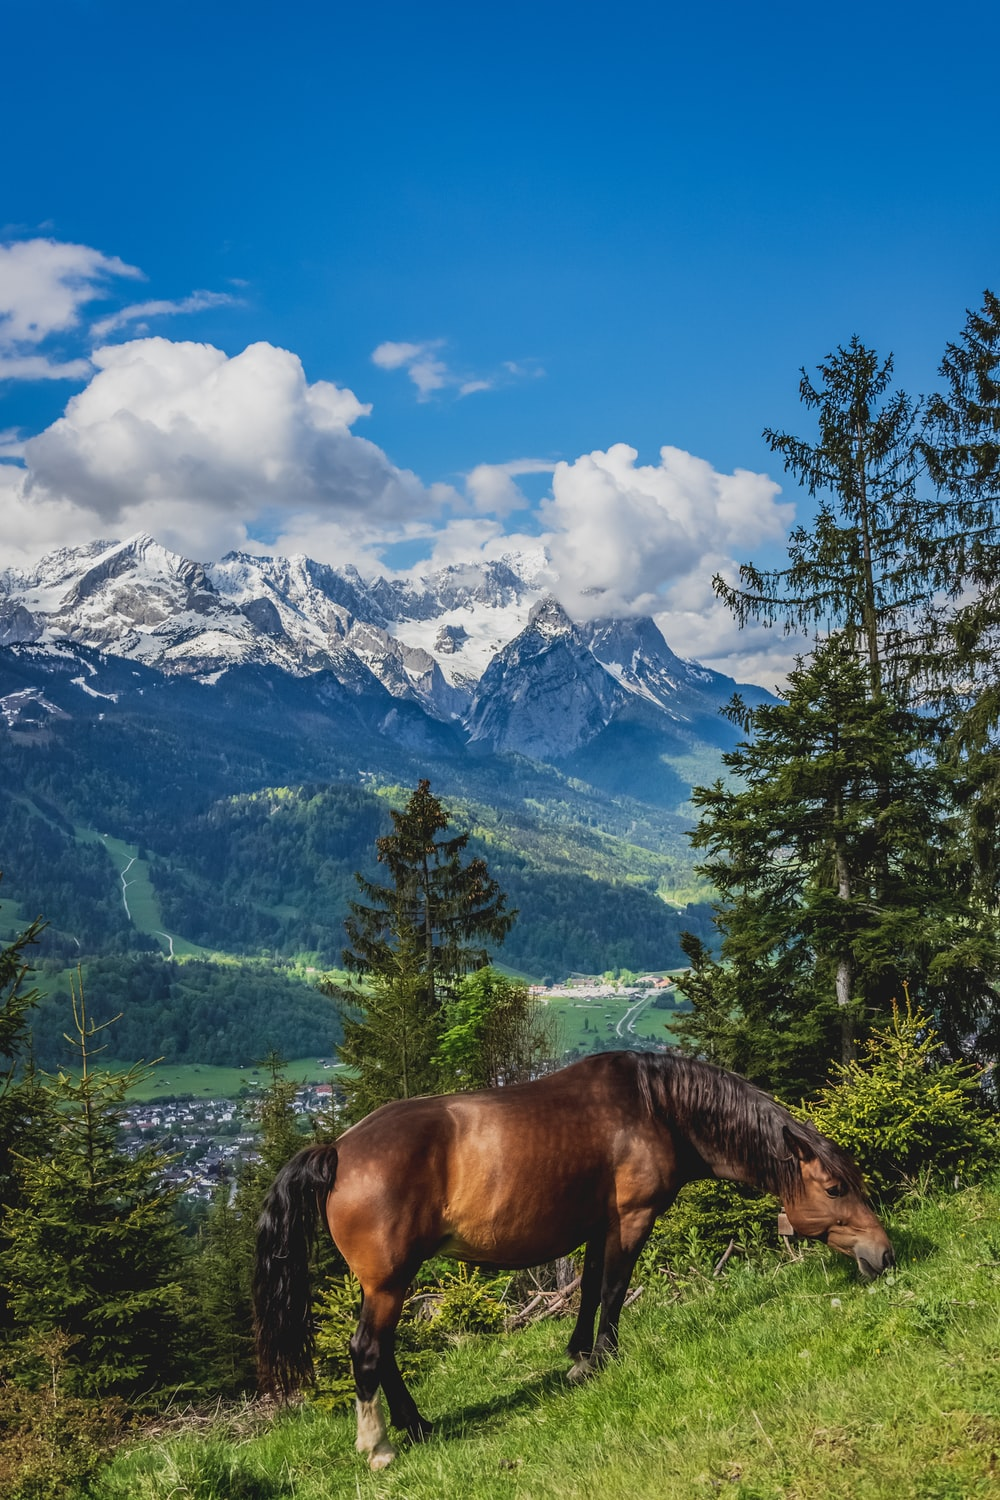 brown horse on green grass field near green trees and snow covered mountains during daytime